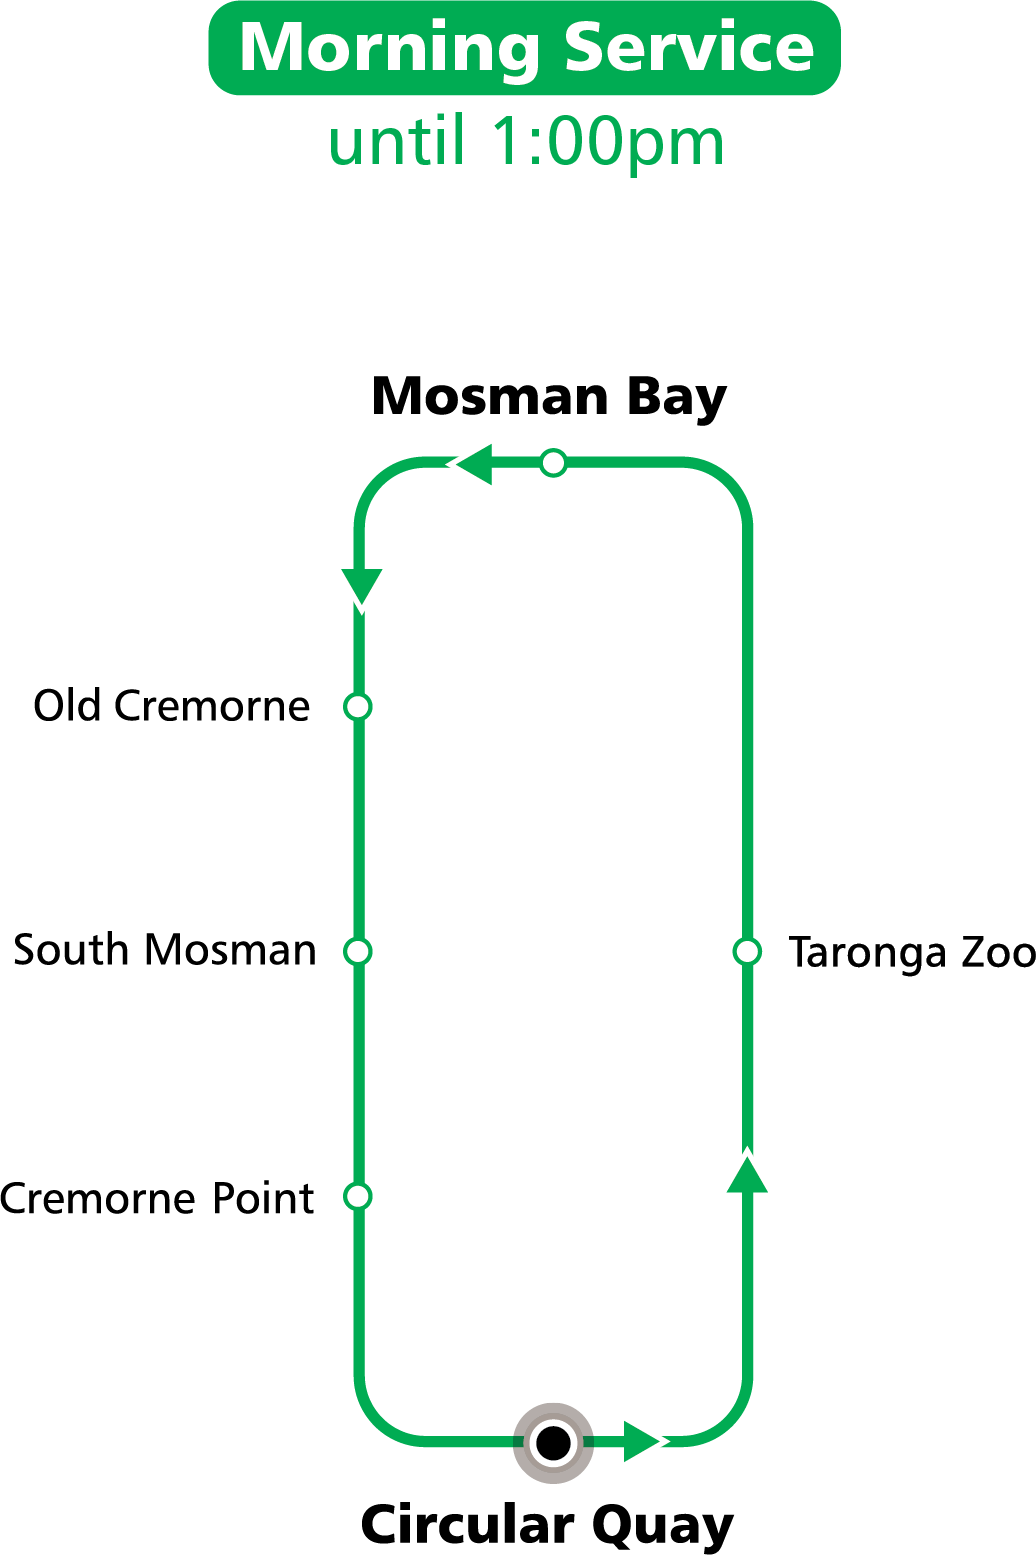 F6 route morning loop (Circular Quay - Taronga Zoo - Mosman Bay - Old Cremorne - South Mosman - Cremorne Point - Circular Quay)